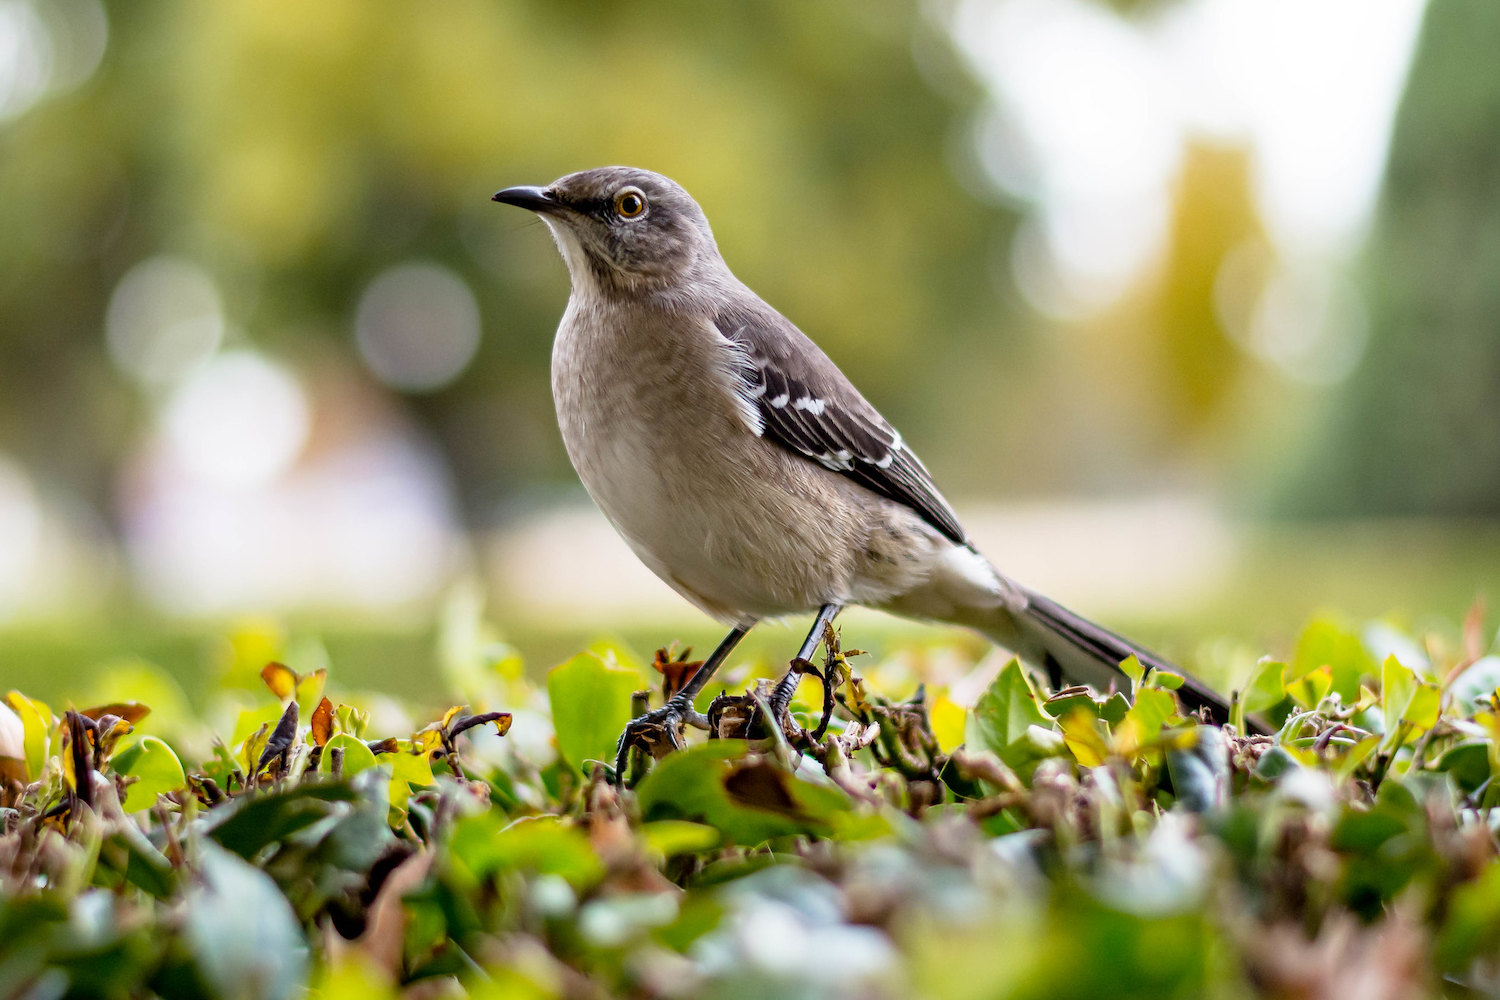 https://i2.wp.com/digital-photography-school.com/wp-content/uploads/2020/01/lightroom-keywords-mockingbird.jpg?resize=1500%2C1000&ssl=1